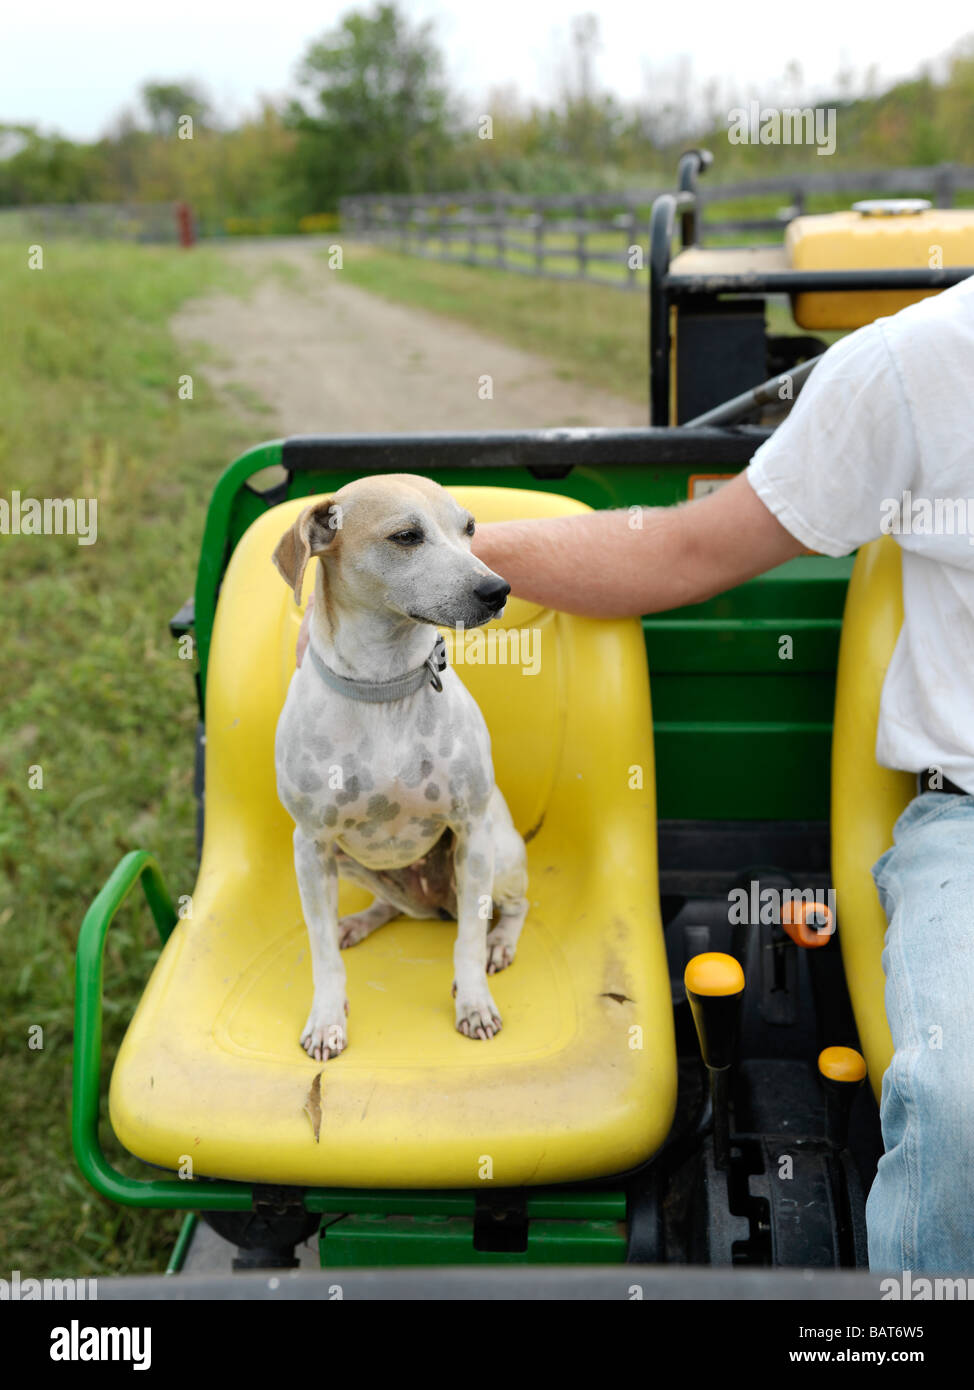 A loyal dog sits in the seat next to his owner on a tractor at a farm in Upstate New York. - Stock Image